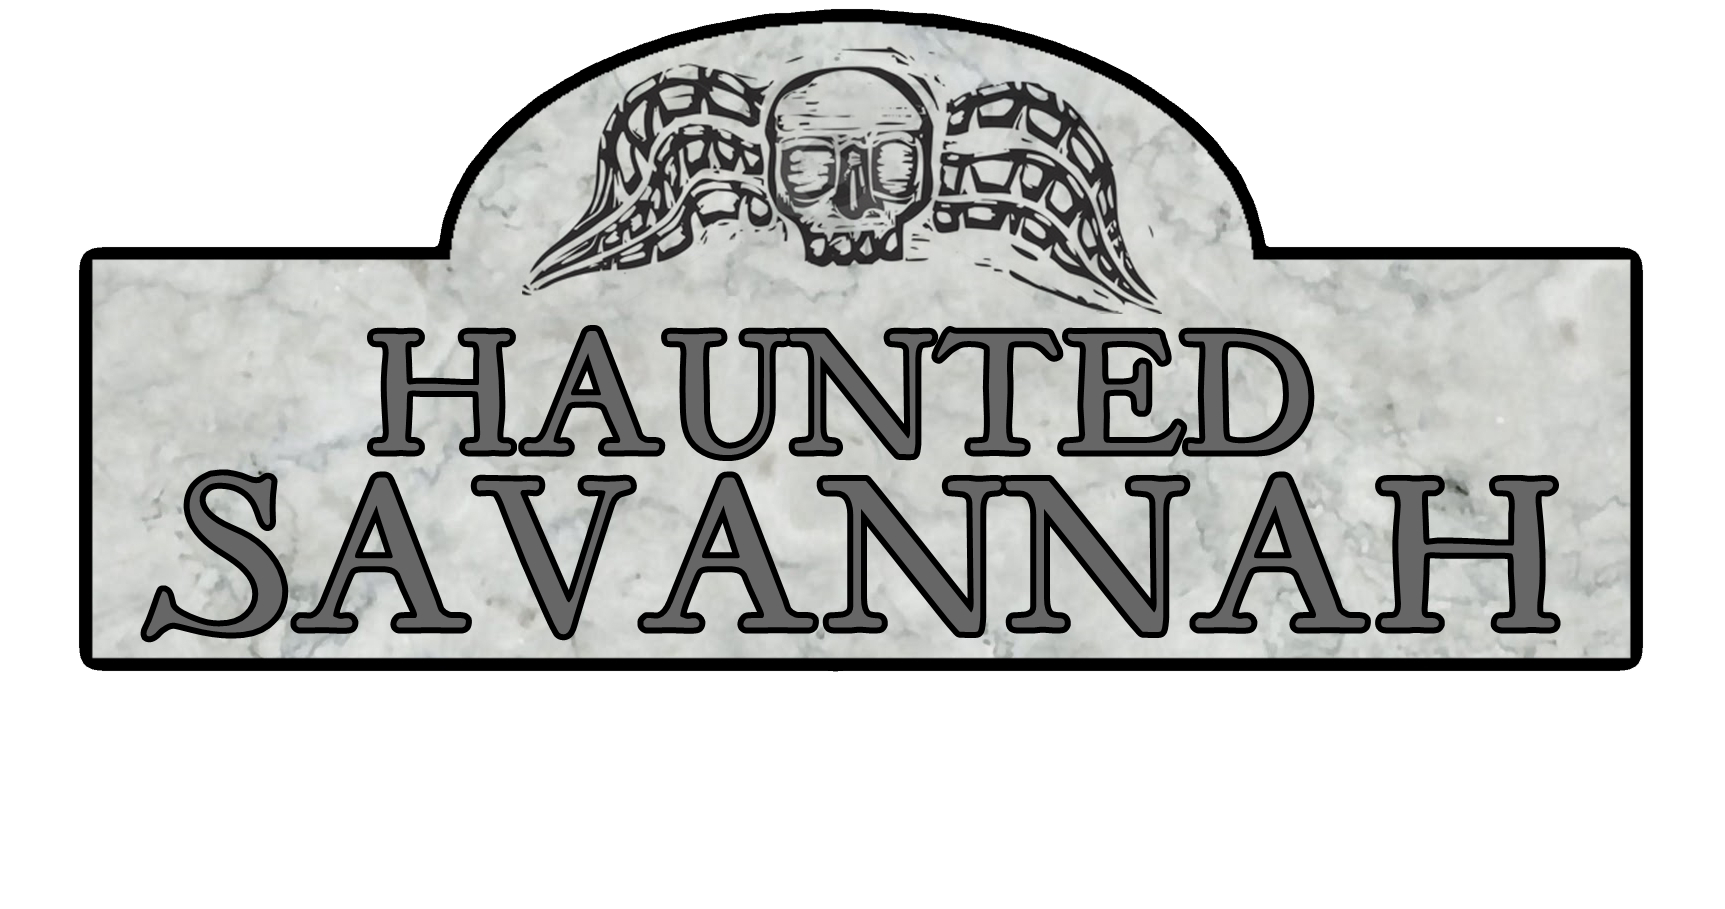 Walking Savannah Ghost Tours | Call Today! 912.445.5027 | Reservations are Required